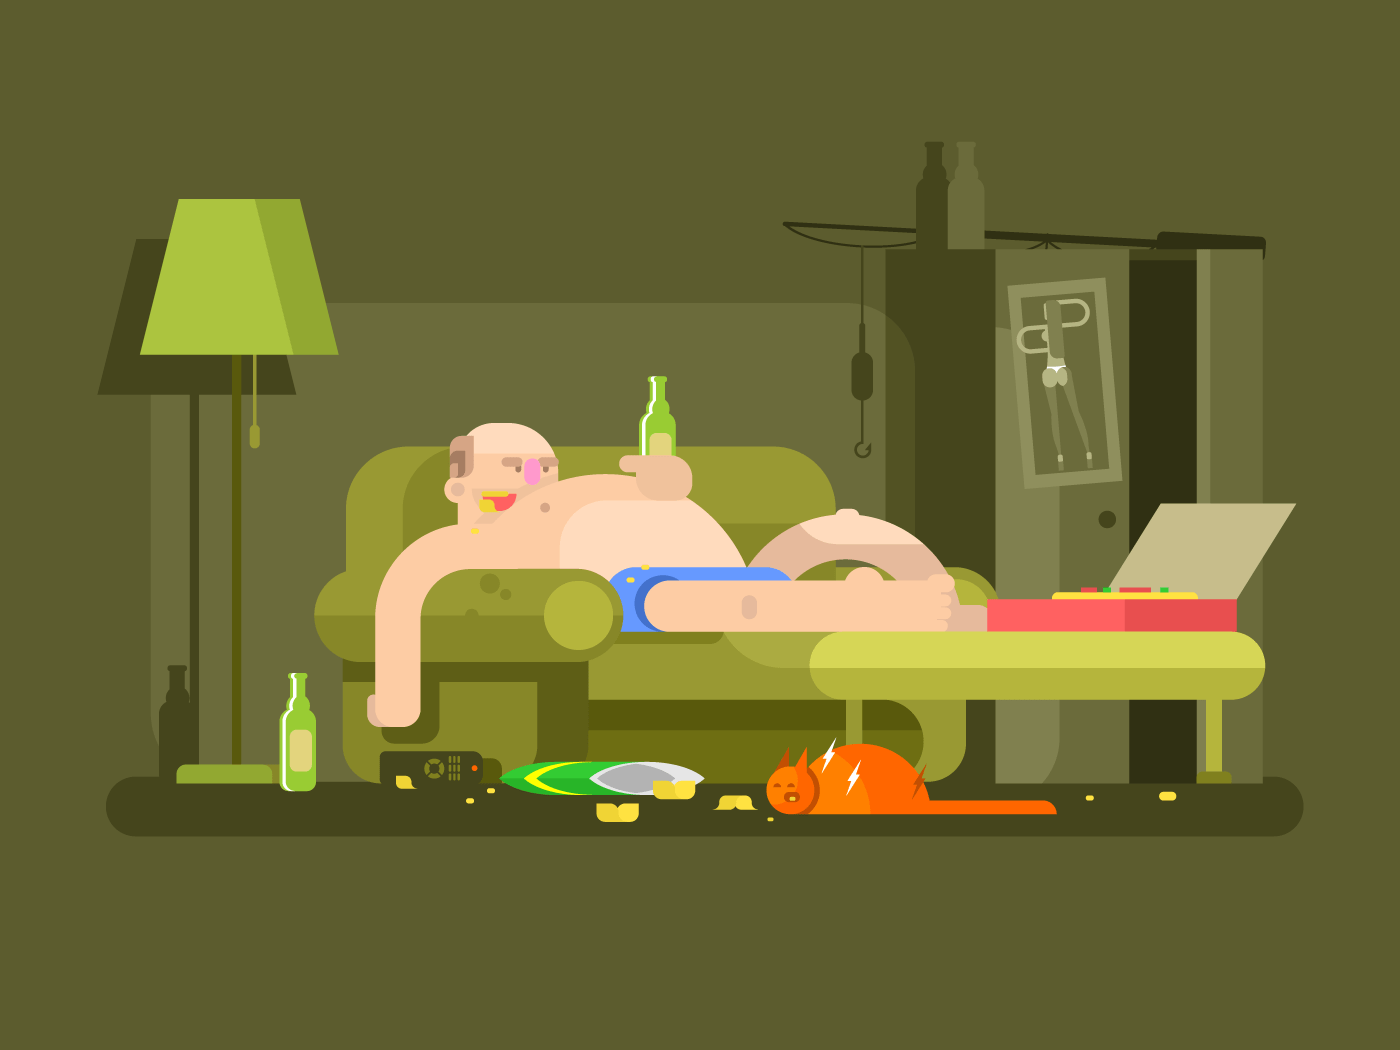 Lazybones character flat vector illustration